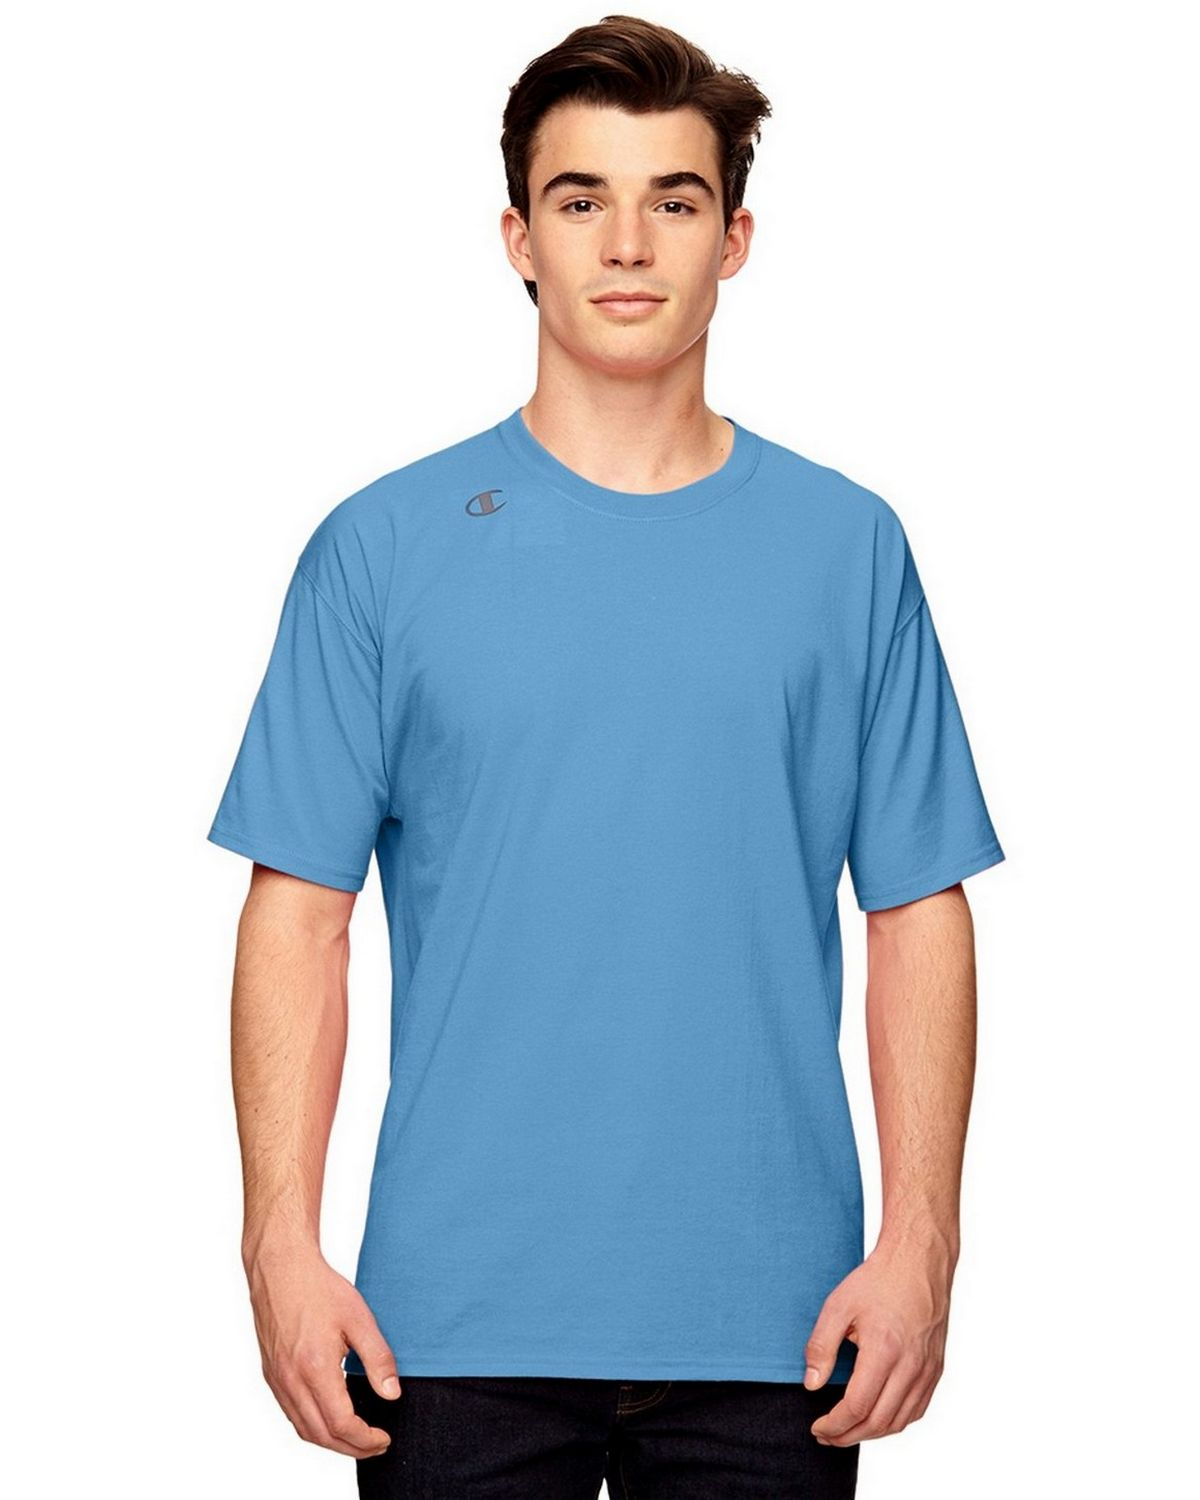 Champion T380 Vapor Cotton T-Shirt - Sport Light Blue - M T380